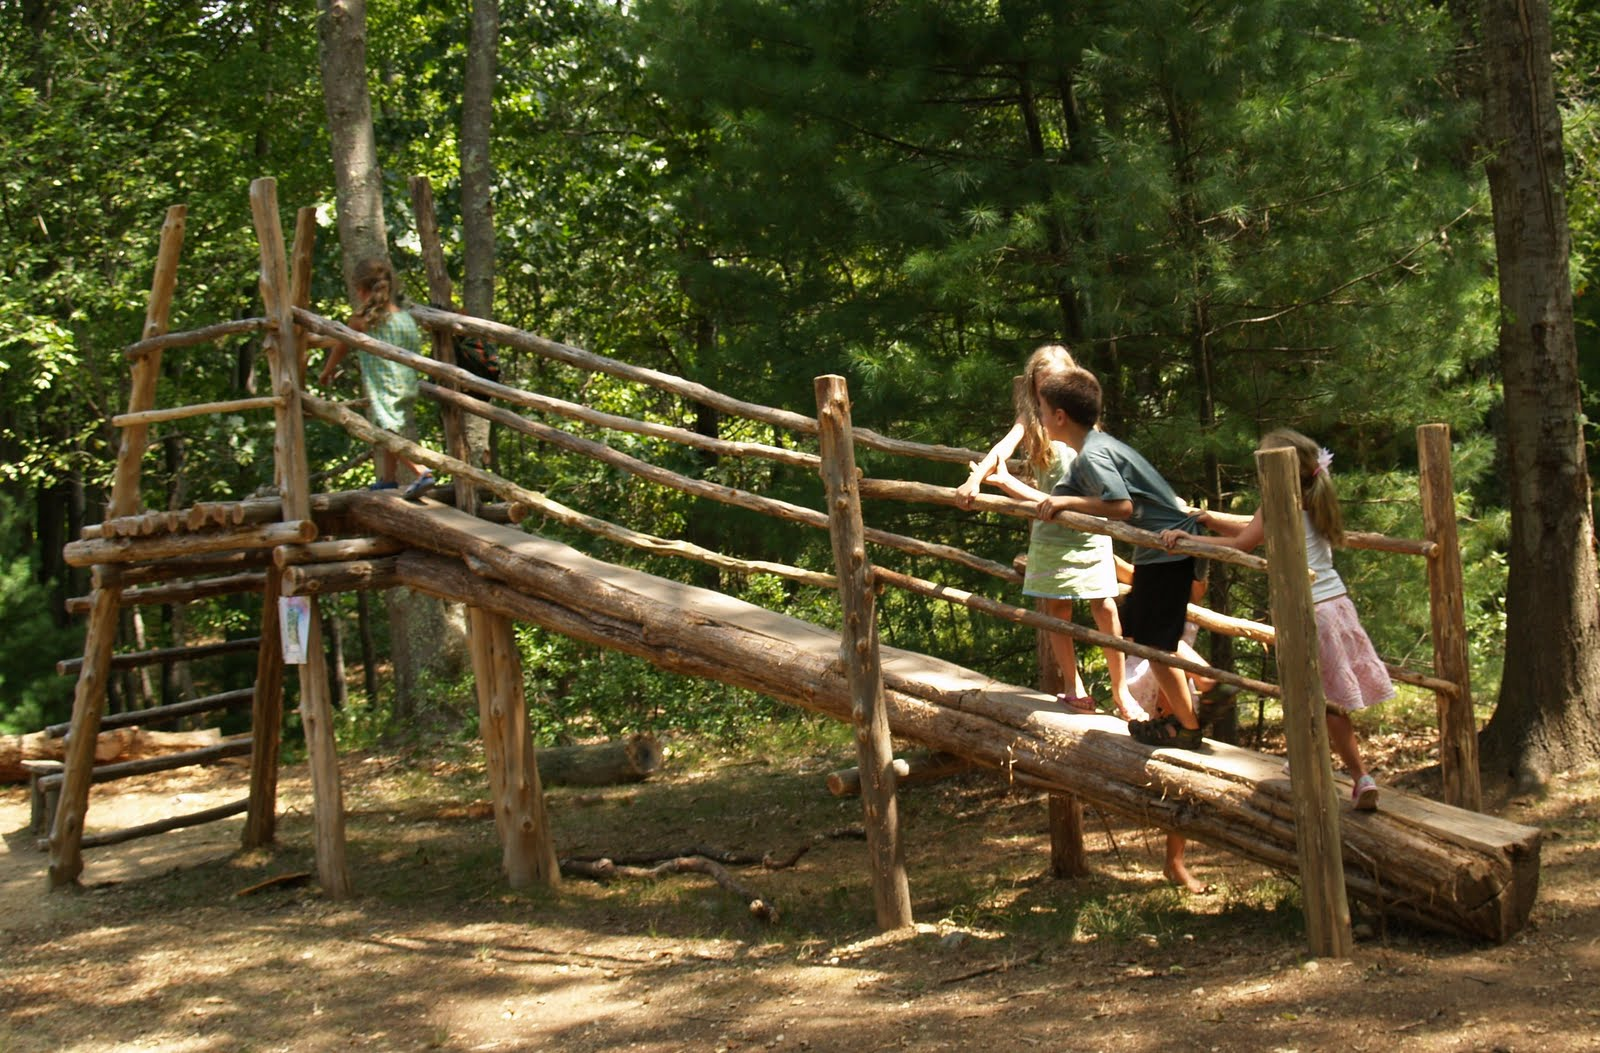 Sweet home days natural playground - Natural playgrounds for children ...